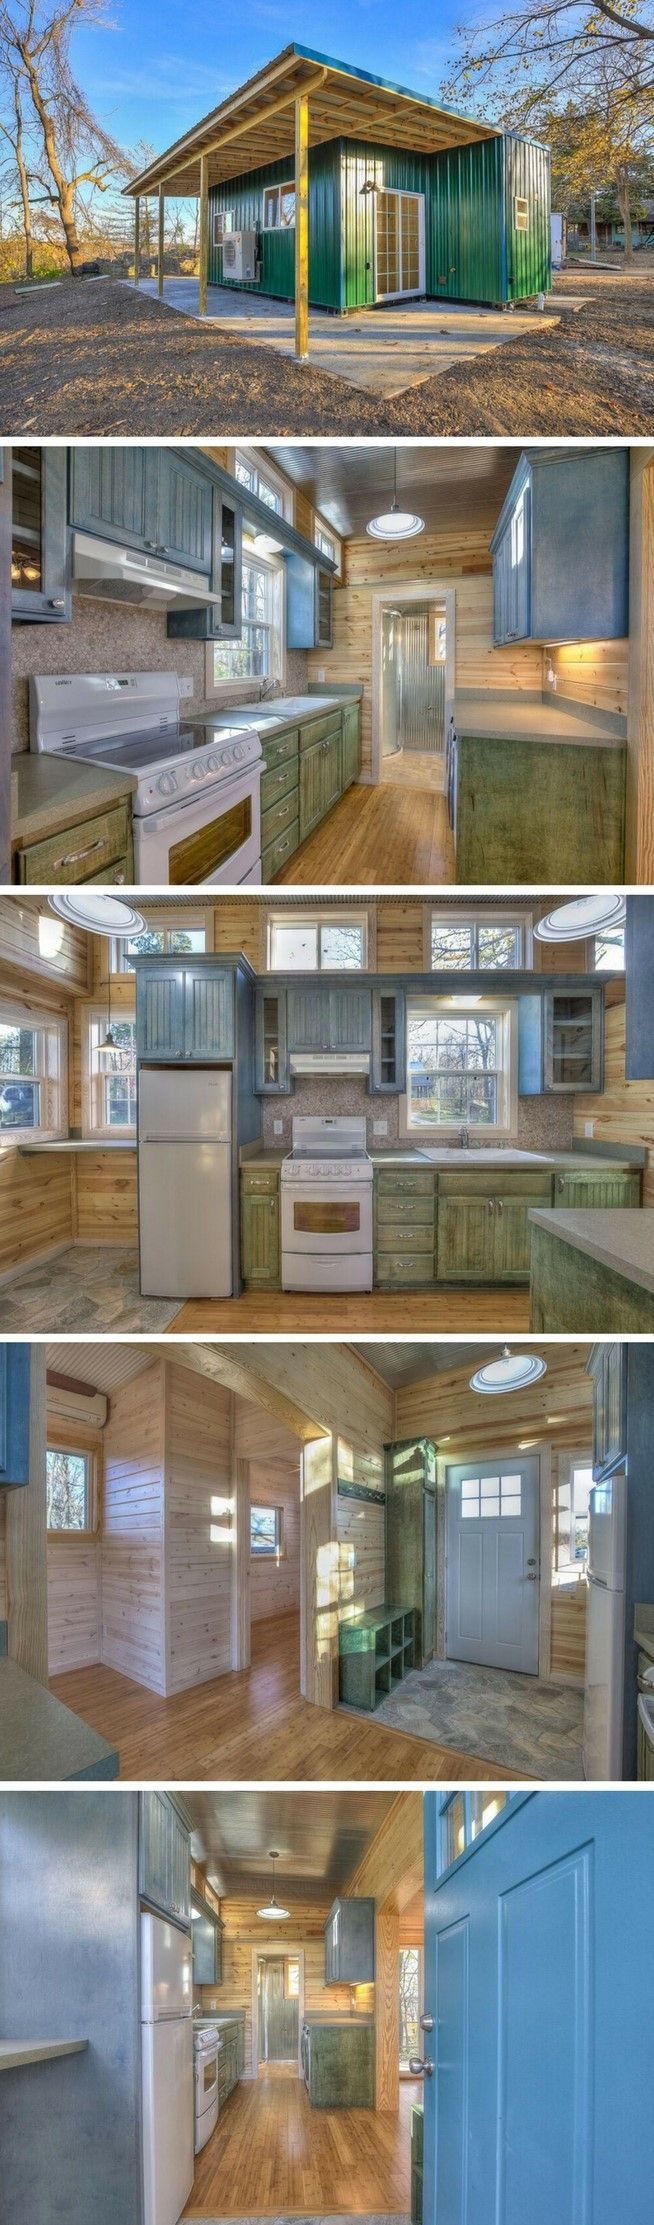 Container House - Container House - HAPPY TWOGETHER TINY SHIPPING CONTAINER Who Else Wants Simple Step-By-Step Plans To Design And Build A Container Home From Scratch? - Who Else Wants Simple Step-By-Step Plans To Design And Build A Container Home From Scratch?